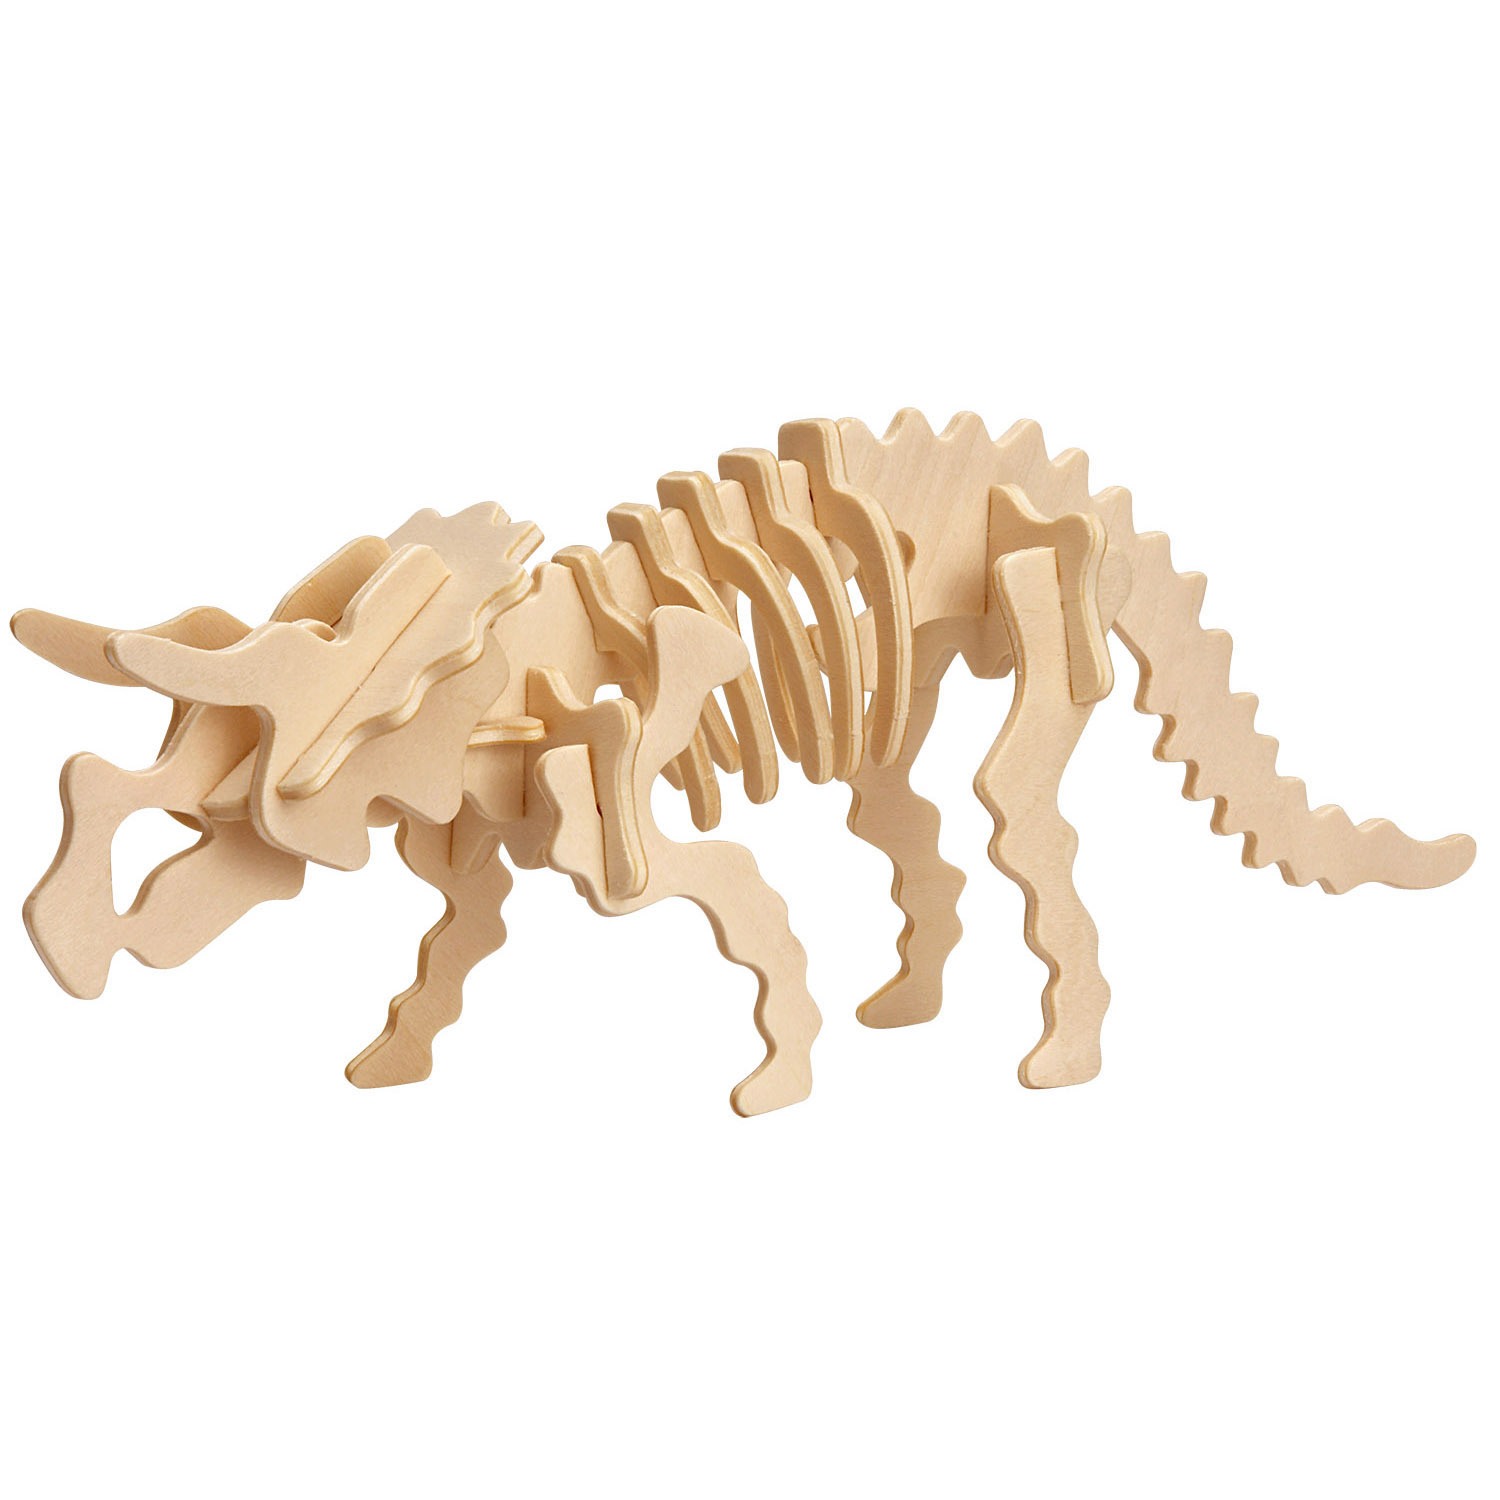 puzzle 3d en bois triceratops professor puzzle dc1344 17 pi ces puzzles dinosaures planet. Black Bedroom Furniture Sets. Home Design Ideas